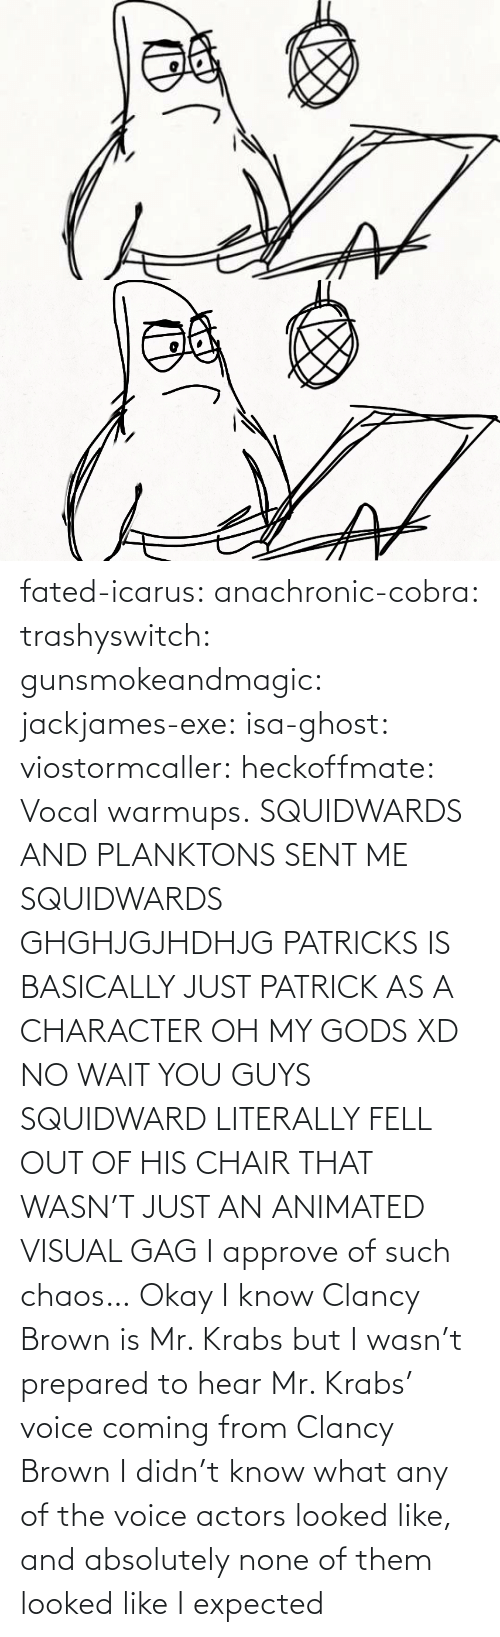 origin: fated-icarus:  anachronic-cobra: trashyswitch:  gunsmokeandmagic:  jackjames-exe:  isa-ghost:   viostormcaller:  heckoffmate: Vocal warmups. SQUIDWARDS AND PLANKTONS SENT ME  SQUIDWARDS GHGHJGJHDHJG   PATRICKS IS BASICALLY JUST PATRICK AS A CHARACTER OH MY GODS XD   NO WAIT YOU GUYS SQUIDWARD LITERALLY FELL OUT OF HIS CHAIR THAT WASN'T JUST AN ANIMATED VISUAL GAG    I approve of such chaos…    Okay I know Clancy Brown is Mr. Krabs but I wasn't prepared to hear Mr. Krabs' voice coming from Clancy Brown    I didn't know what any of the voice actors looked like, and absolutely none of them looked like I expected